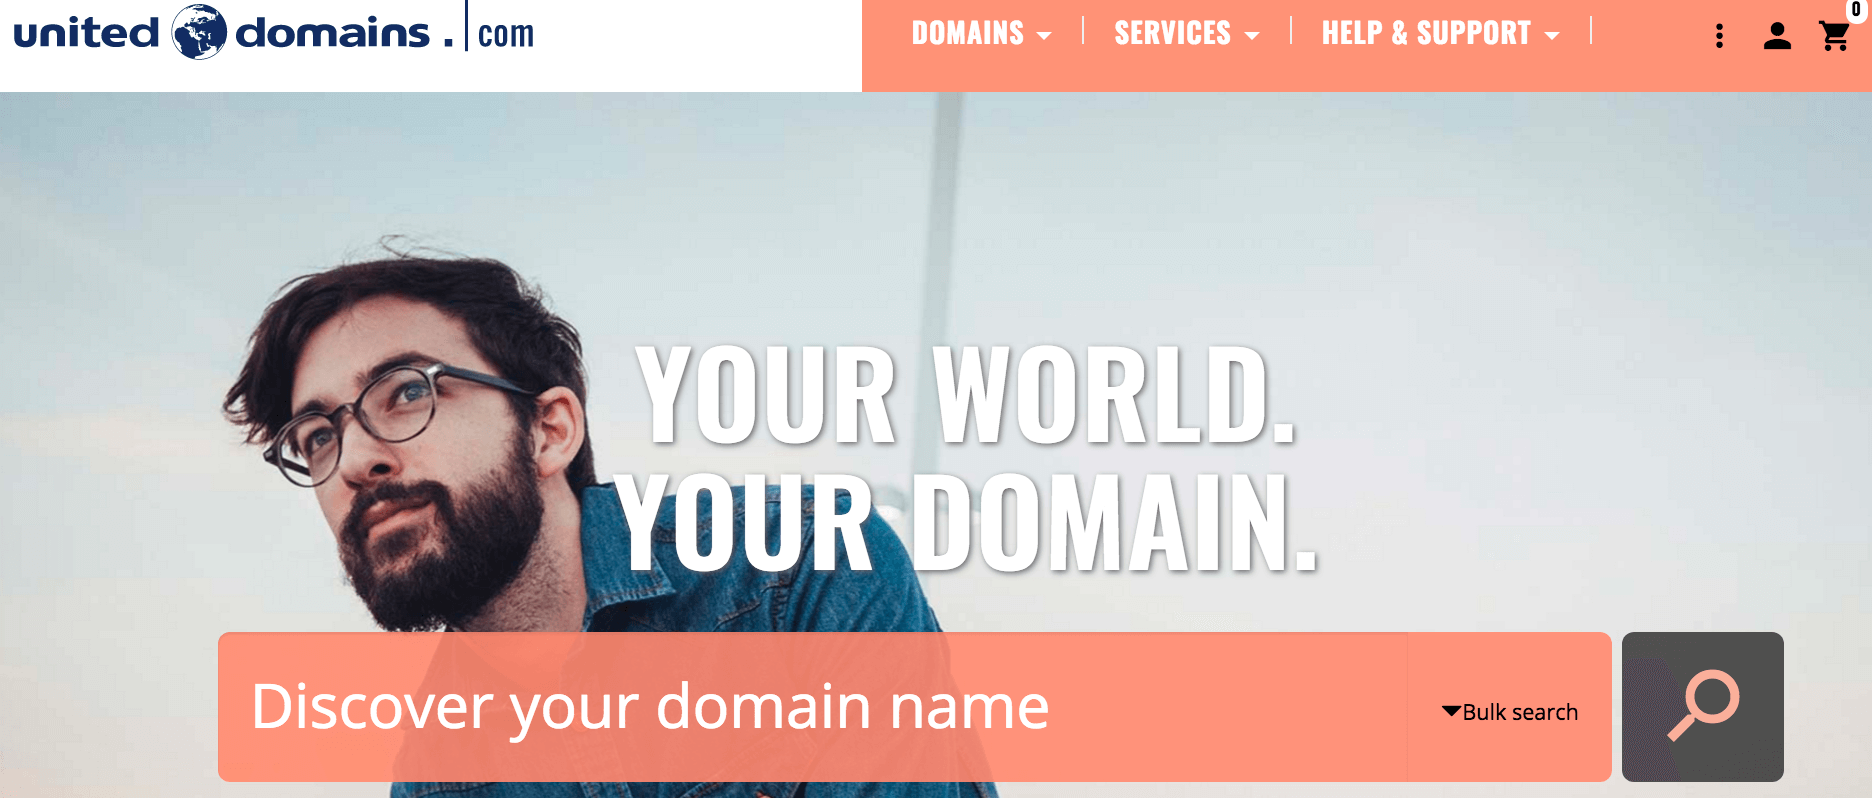 United domains domain registrar - BlogTipsTricks